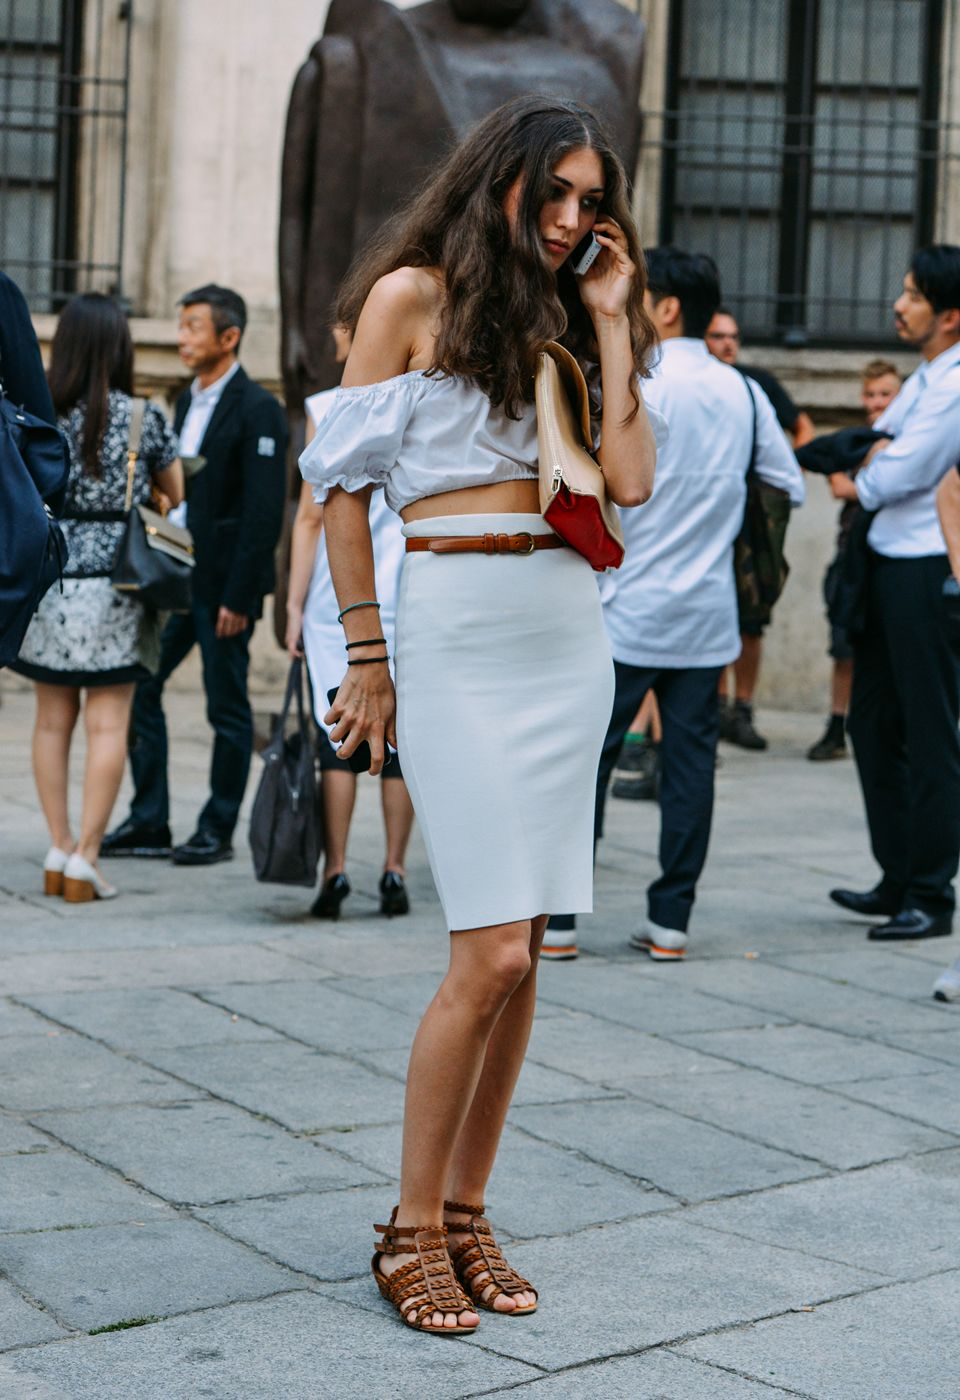 love the natural hair and easy going top with sleek pencil skirt